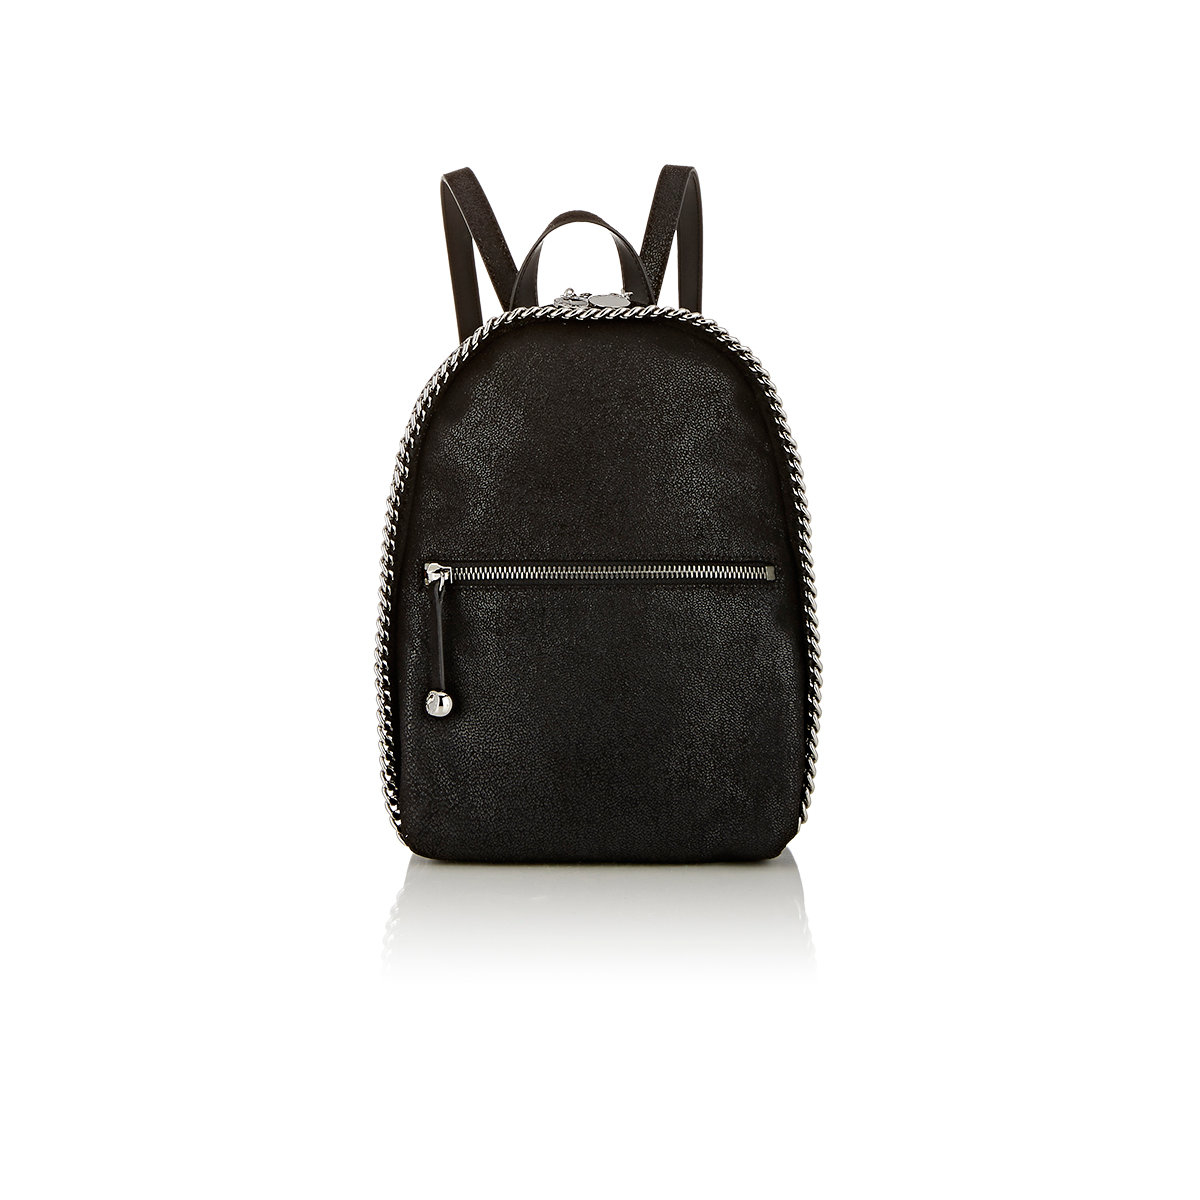 df2e92283a Gallery. Previously sold at  Barneys New York · Women s Mini Backpack  Women s Stella Mccartney Falabella ...